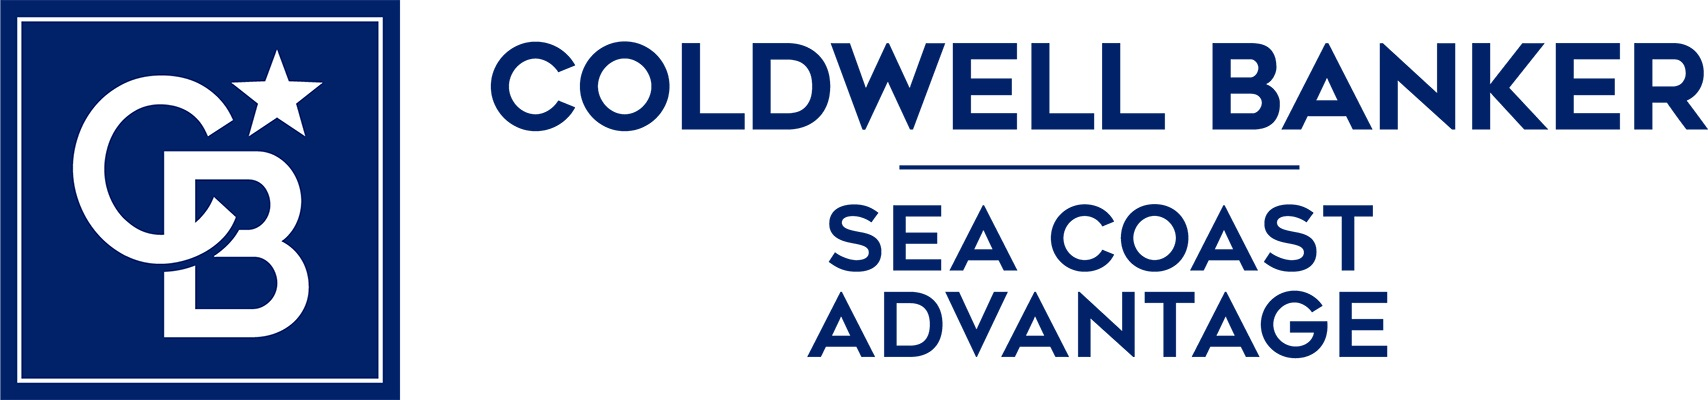 Gladys Smith - Coldwell Banker Sea Coast Advantage Realty